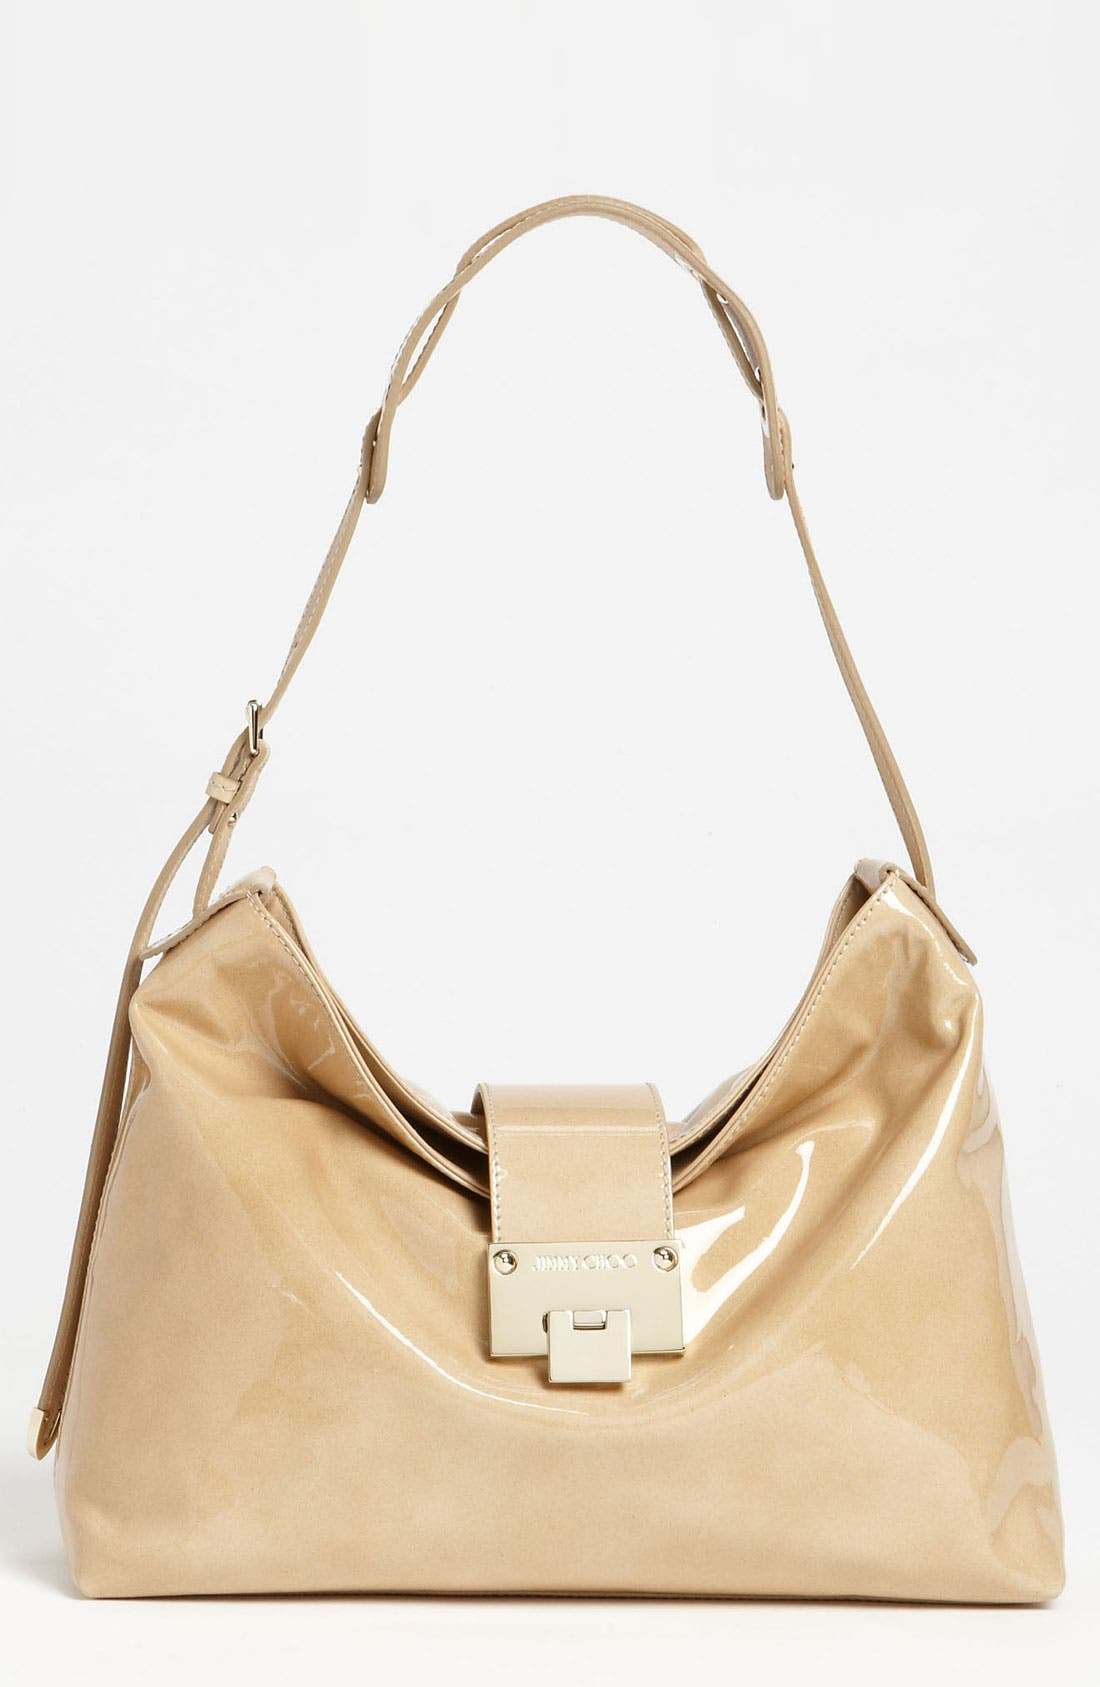 Alternate Image 1 Selected - Jimmy Choo 'Rachel - Small' Patent Leather Shoulder Bag